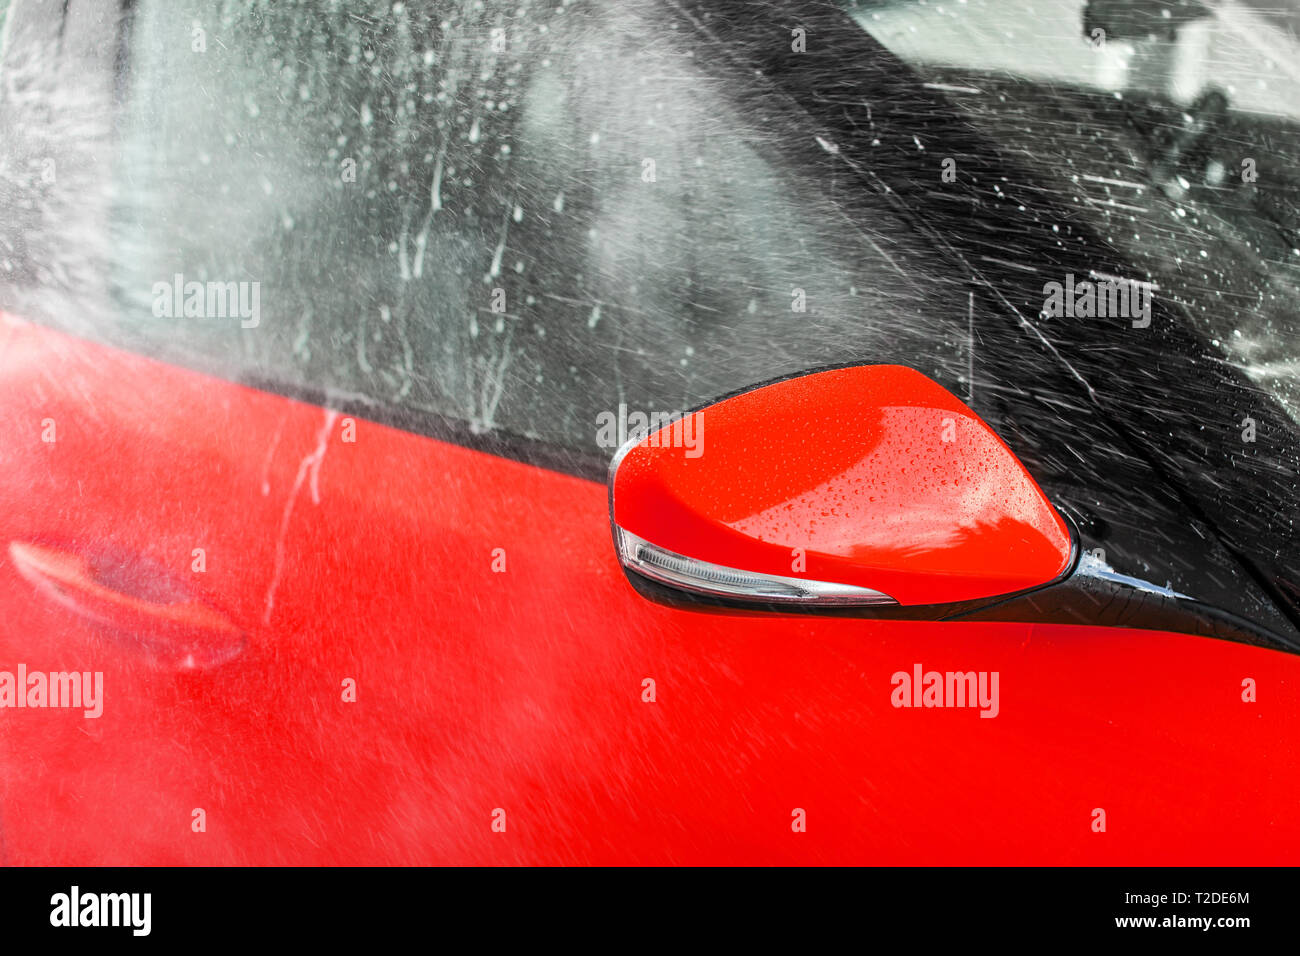 Side mirror of bright red car washed in self serve carwash, water spraying on the glass. Stock Photo